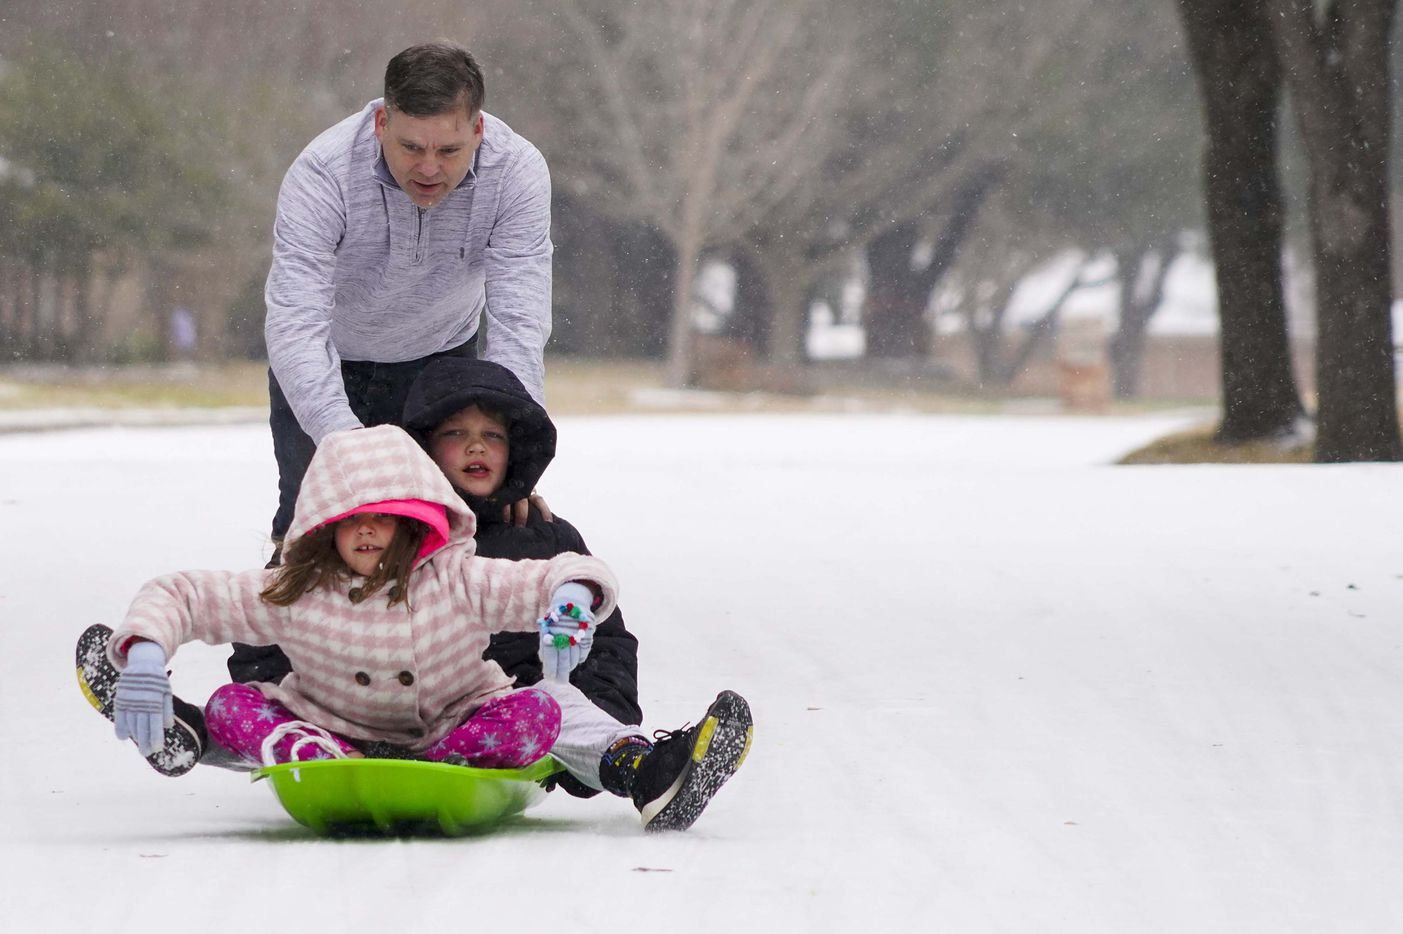 Mae, 9, and Vaughn, 11, Scrogginthorpe get a push from their dad Micah Scrogginthorpe they sled in the empty street front of the home in Richardson as a winter storm brings snow and freezing temperatures to North Texas on Sunday, Feb. 14, 2021.  A winter storm watch has been issued for all of North Texas, including Dallas, Denton, Collin and Tarrant counties and will be in effect from late Saturday through Monday afternoon.